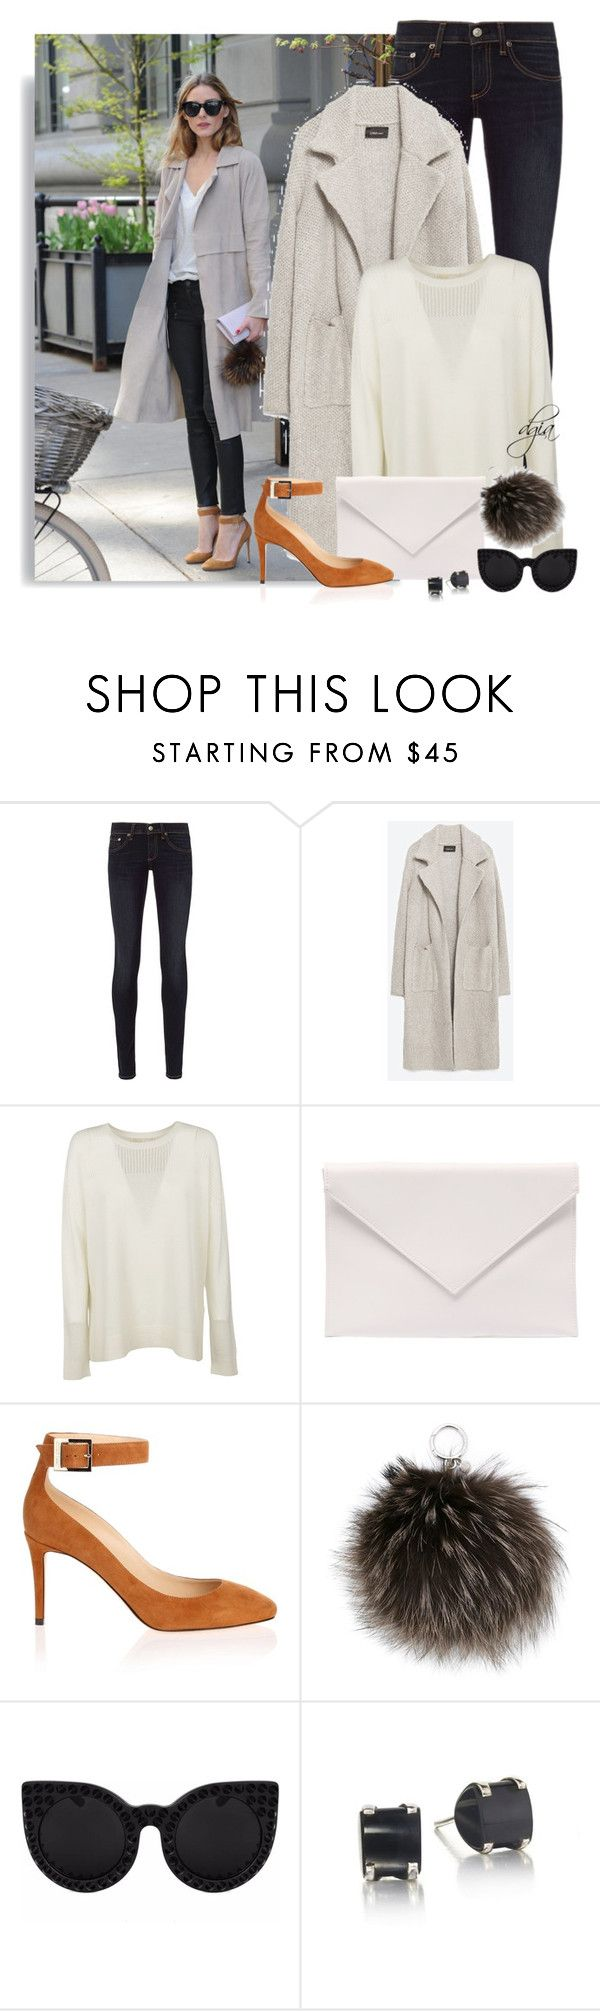 """Zara coat"" by dgia ❤ liked on Polyvore featuring Whiteley, rag & bone, Zara, Michael Kors, Verali, Jimmy Choo, MICHAEL Michael Kors and Delalle"